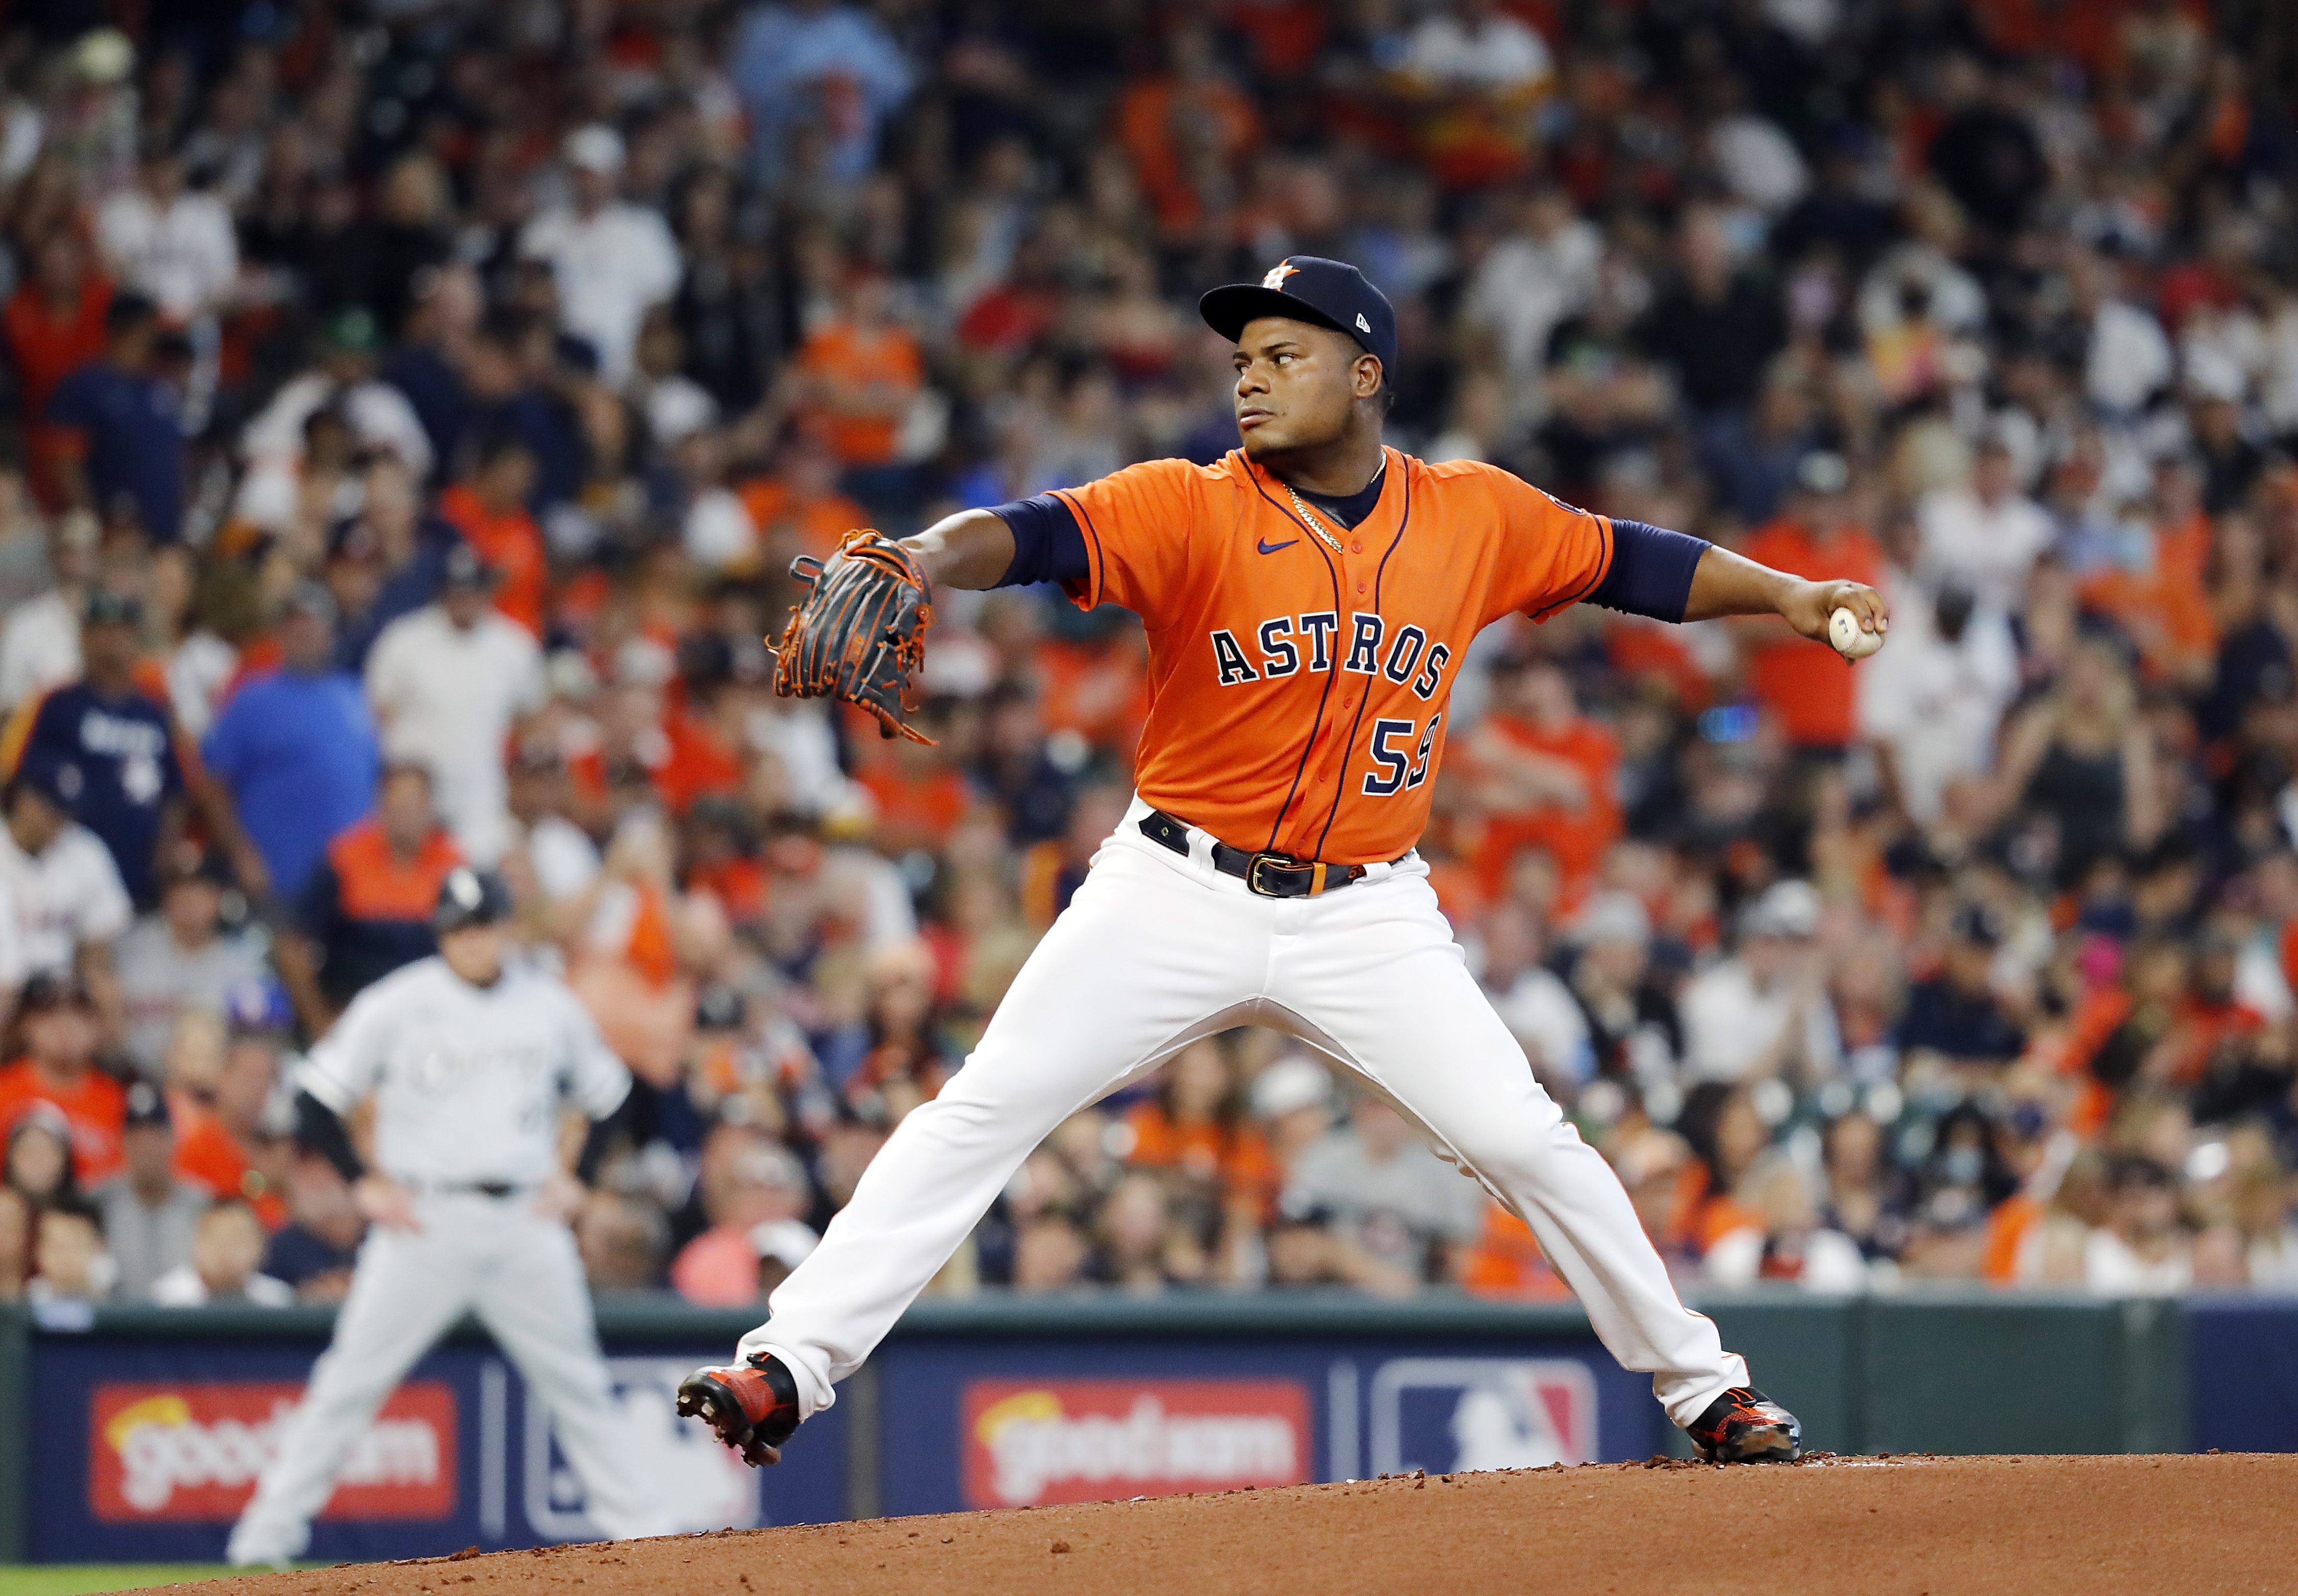 Starting pitcher Framber Valdez #59 of the Houston Astros pitches during the 1st inning of Game 2 of the American League Division Series against the Chicago White Sox at Minute Maid Park on October 08, 2021 in Houston, Texas.